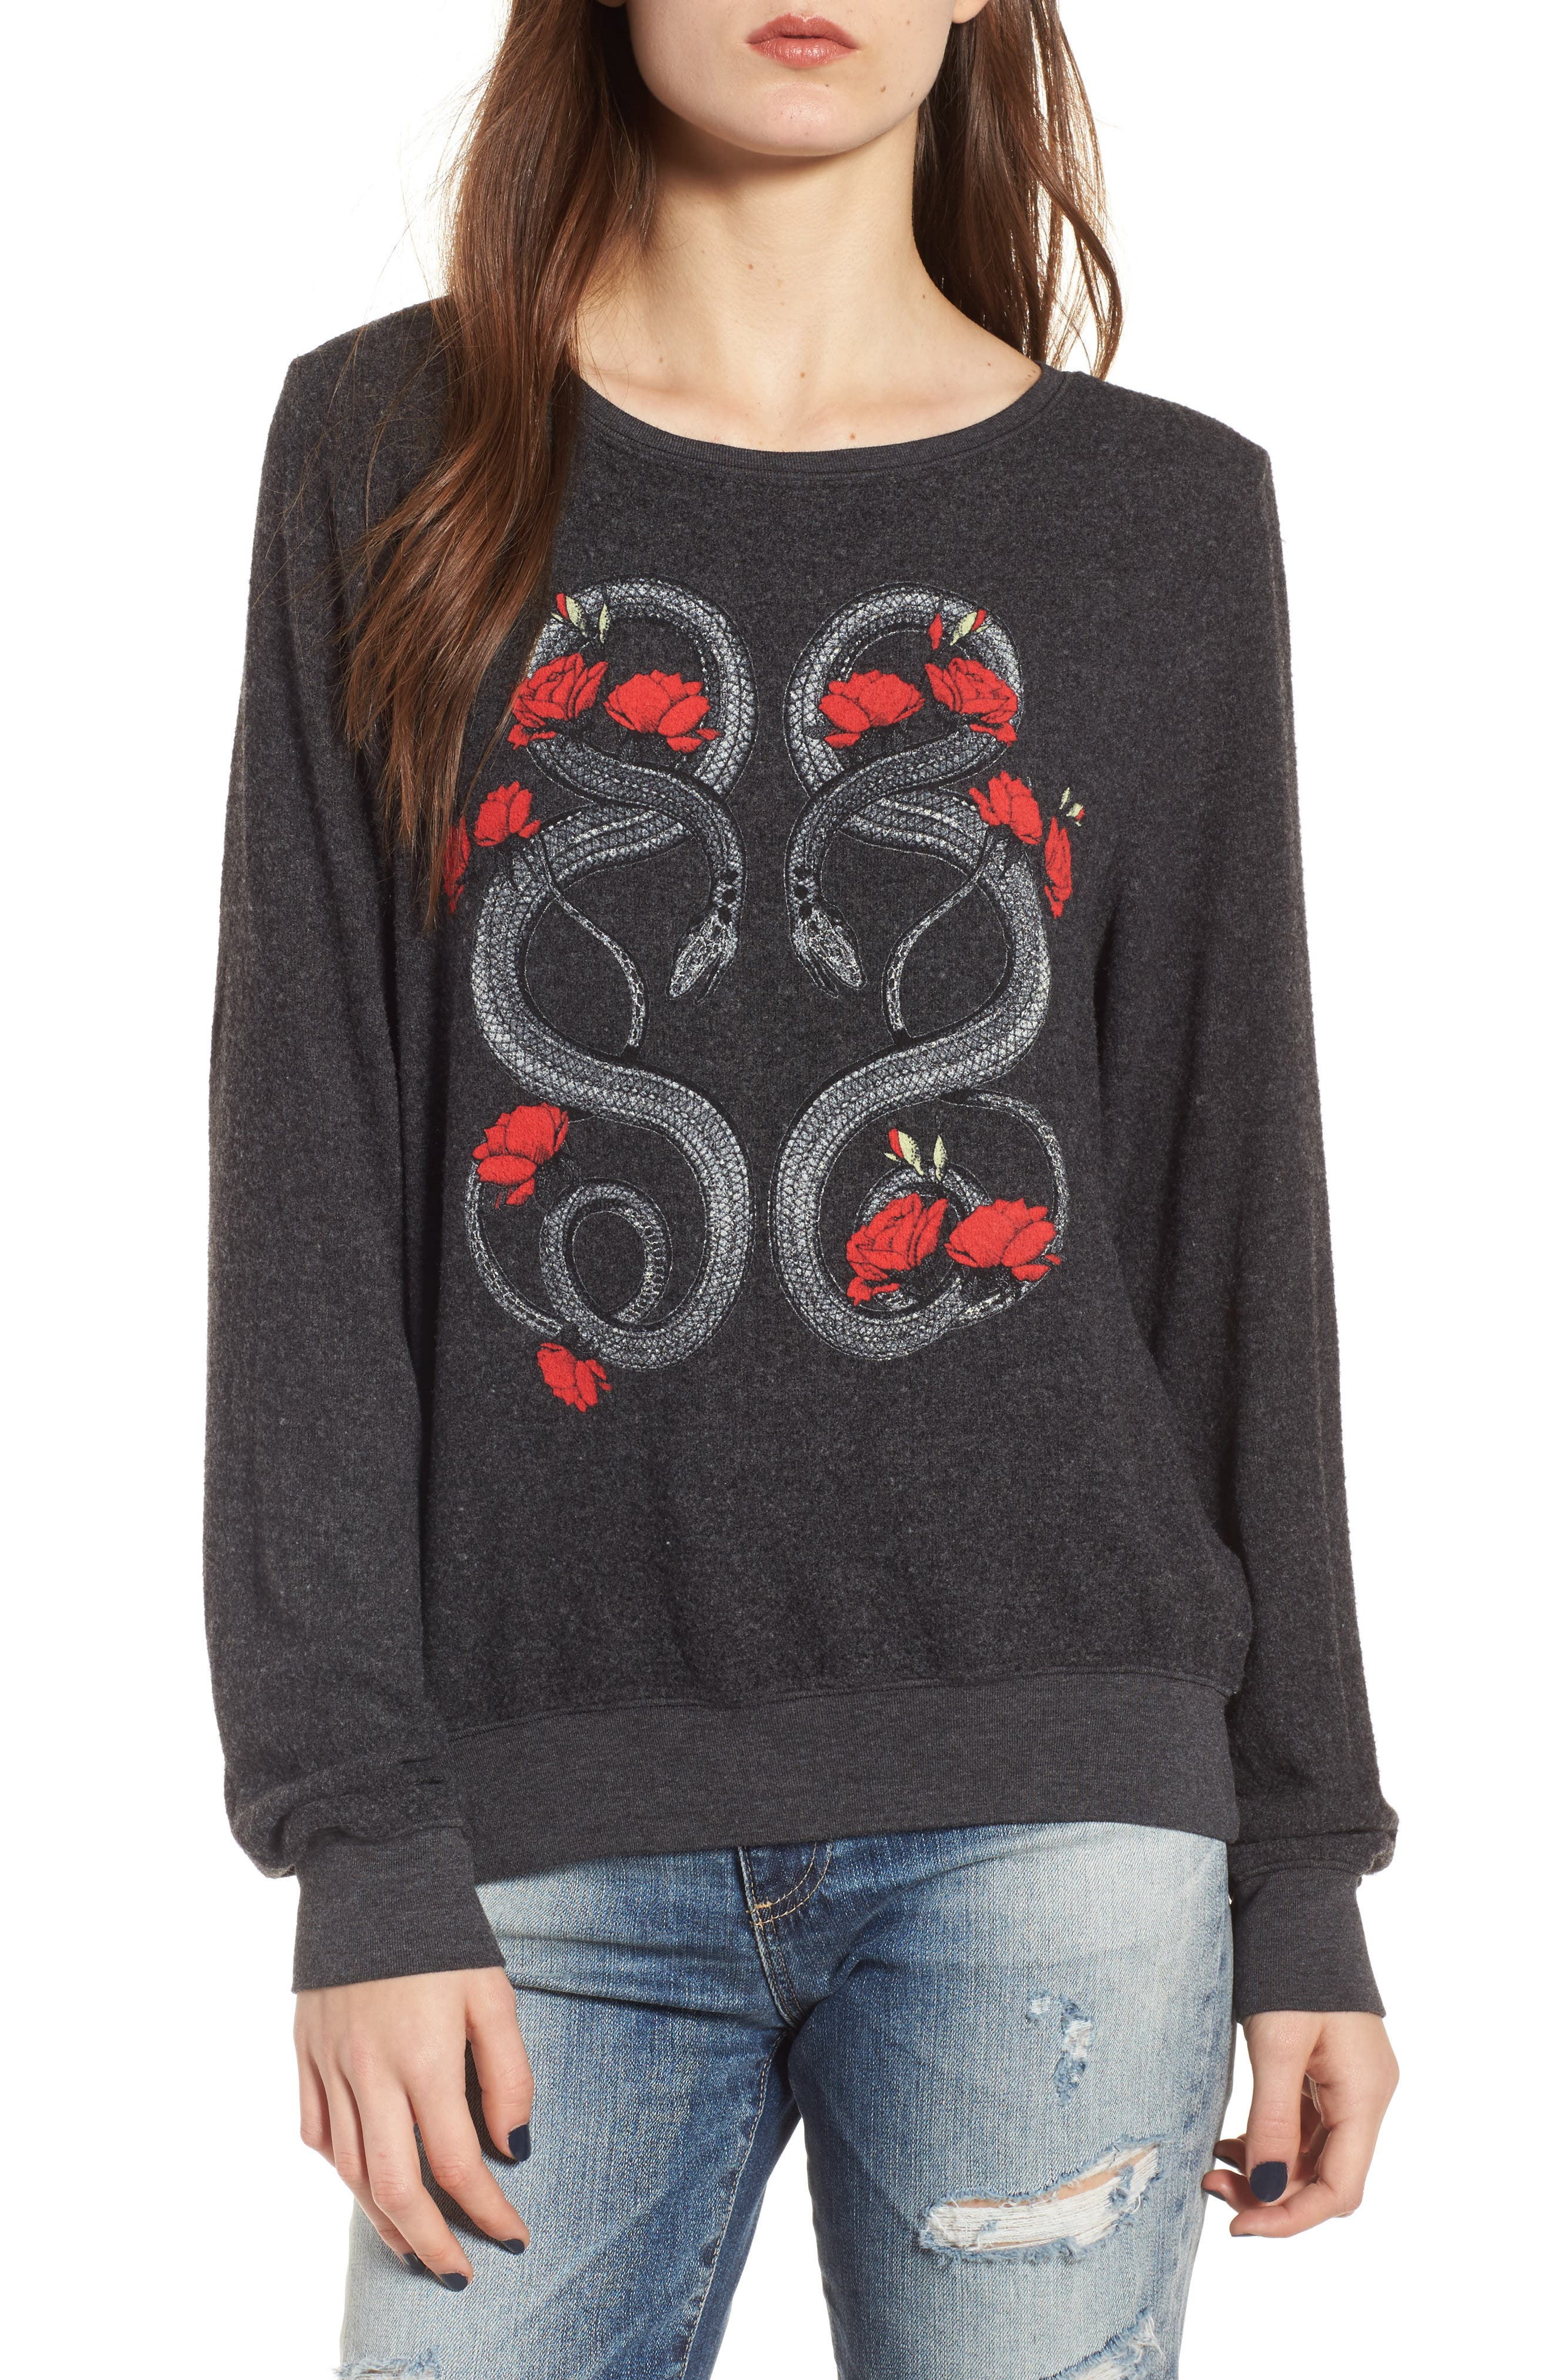 Red Snakes Sweatshirt,                         Main,                         color, 002